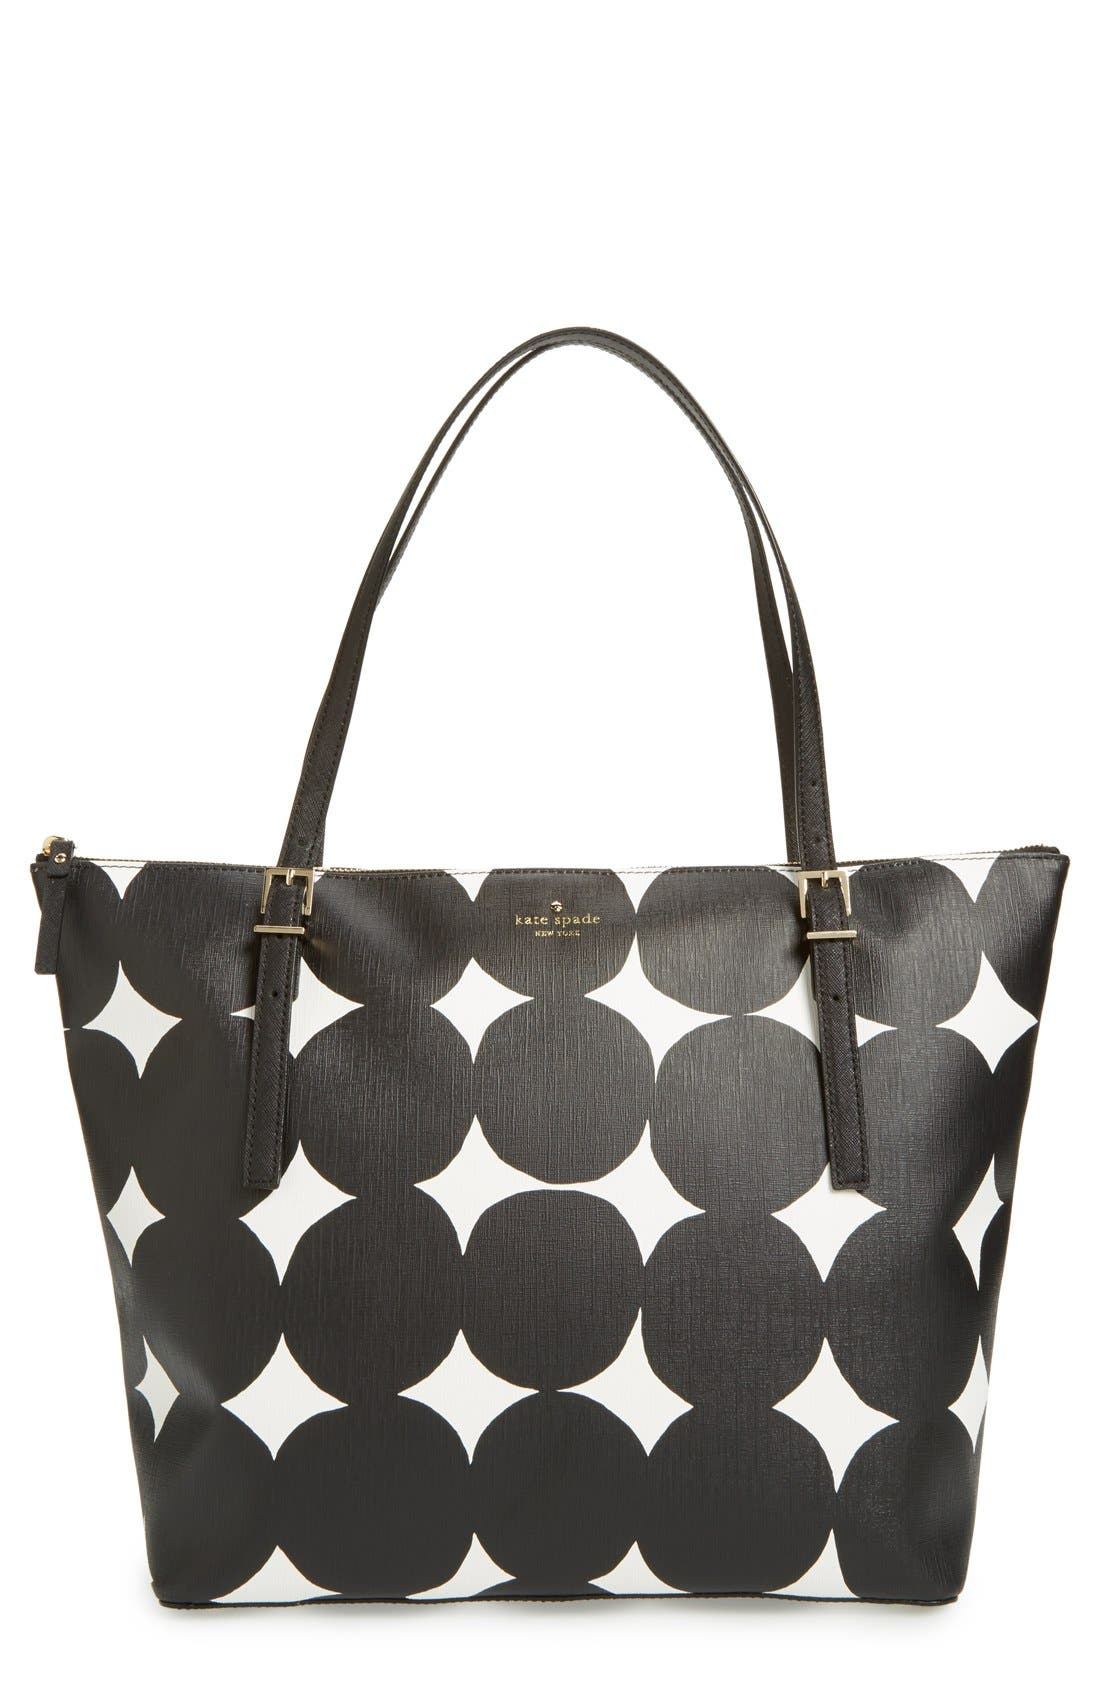 Main Image - kate spade new york 'emma lane - maya' tote